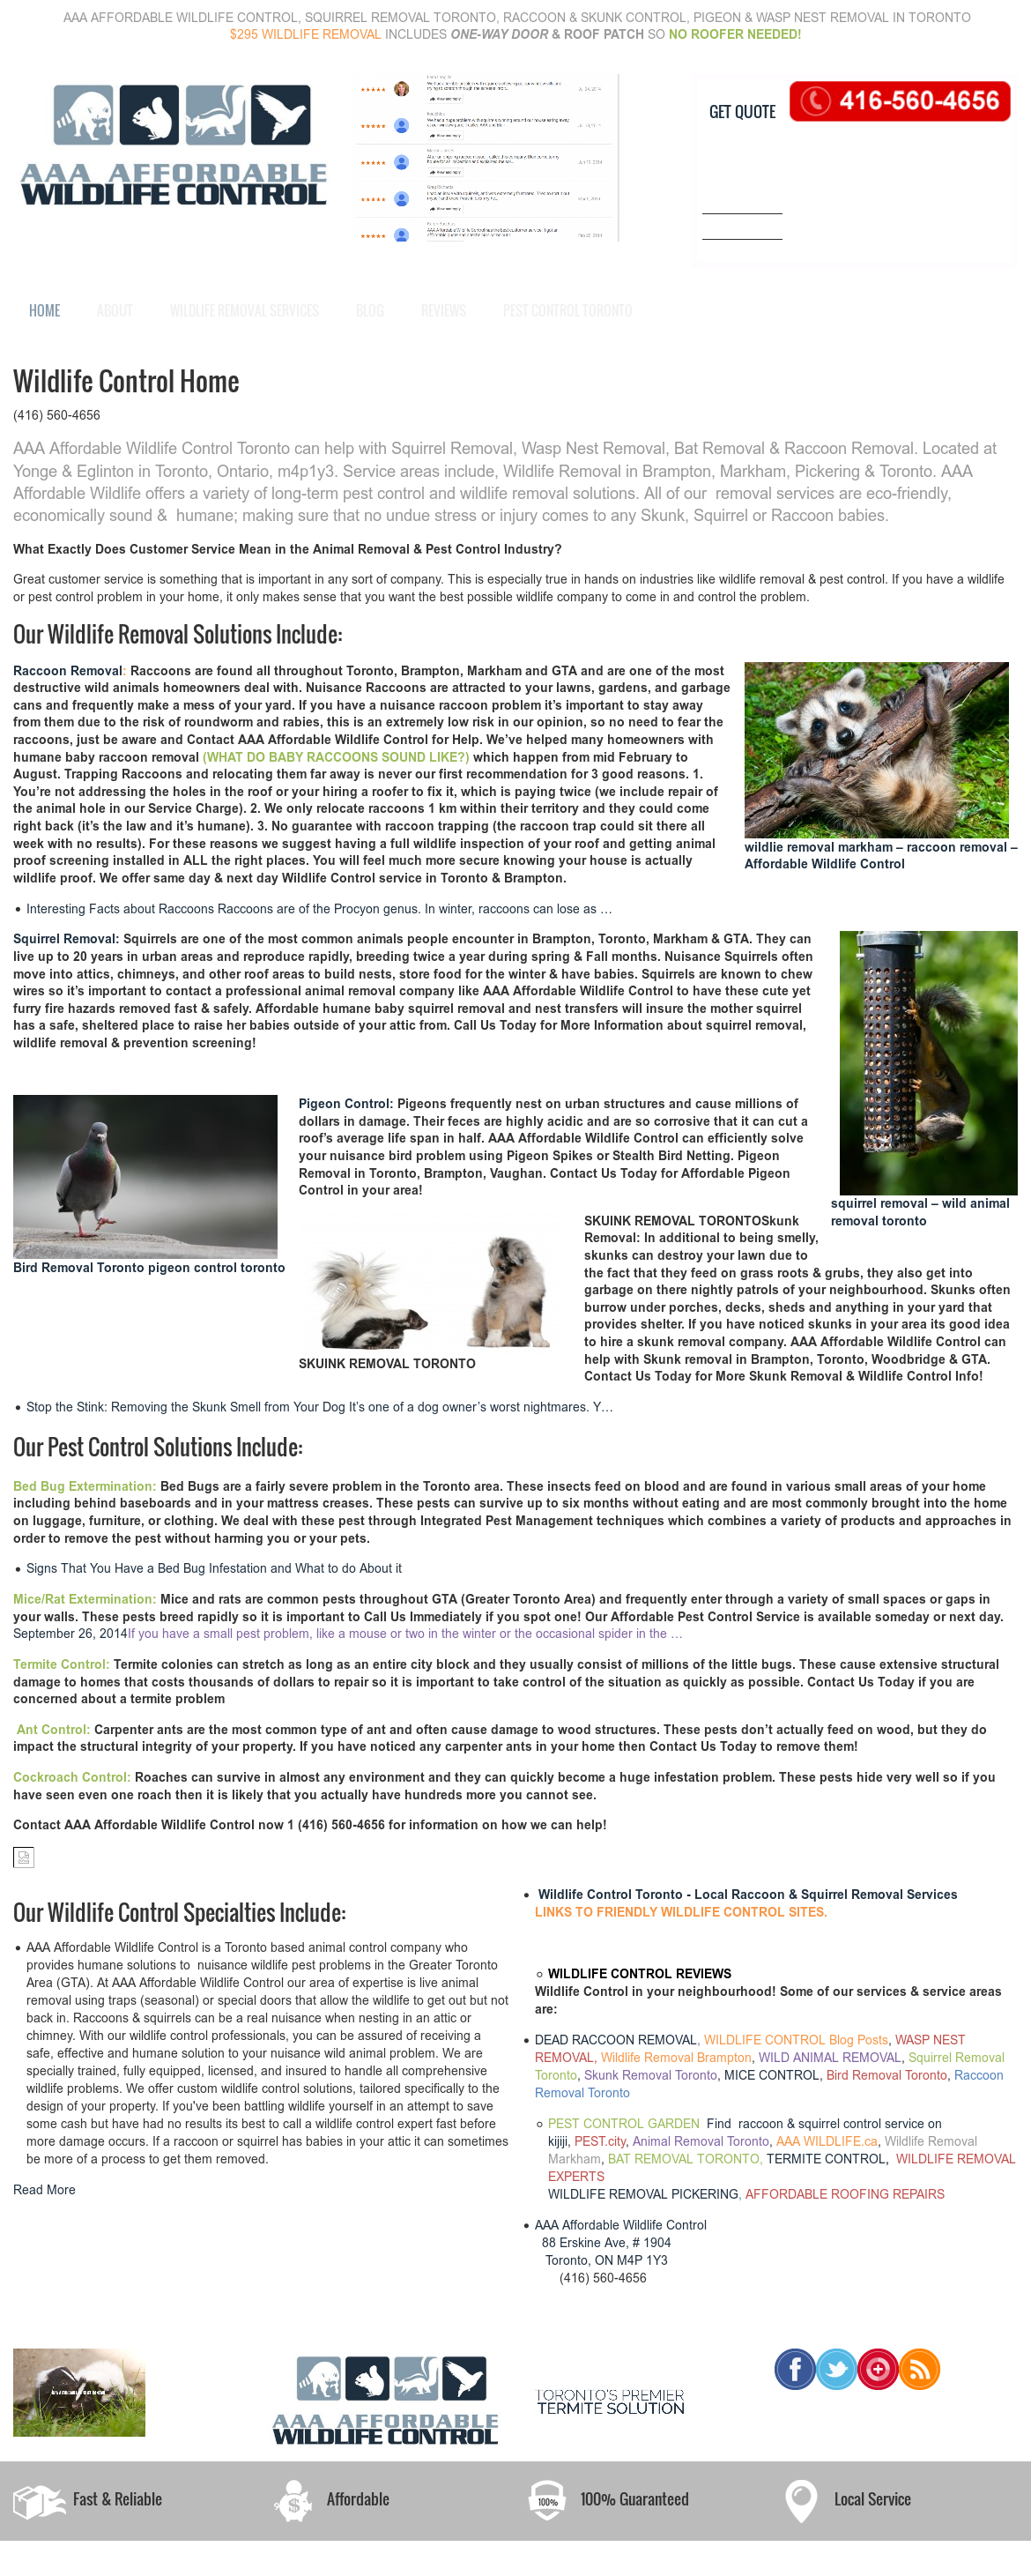 Affordable Wild Life Control S Competitors Revenue Number Of Employees Funding Acquisitions News Owler Company Profile